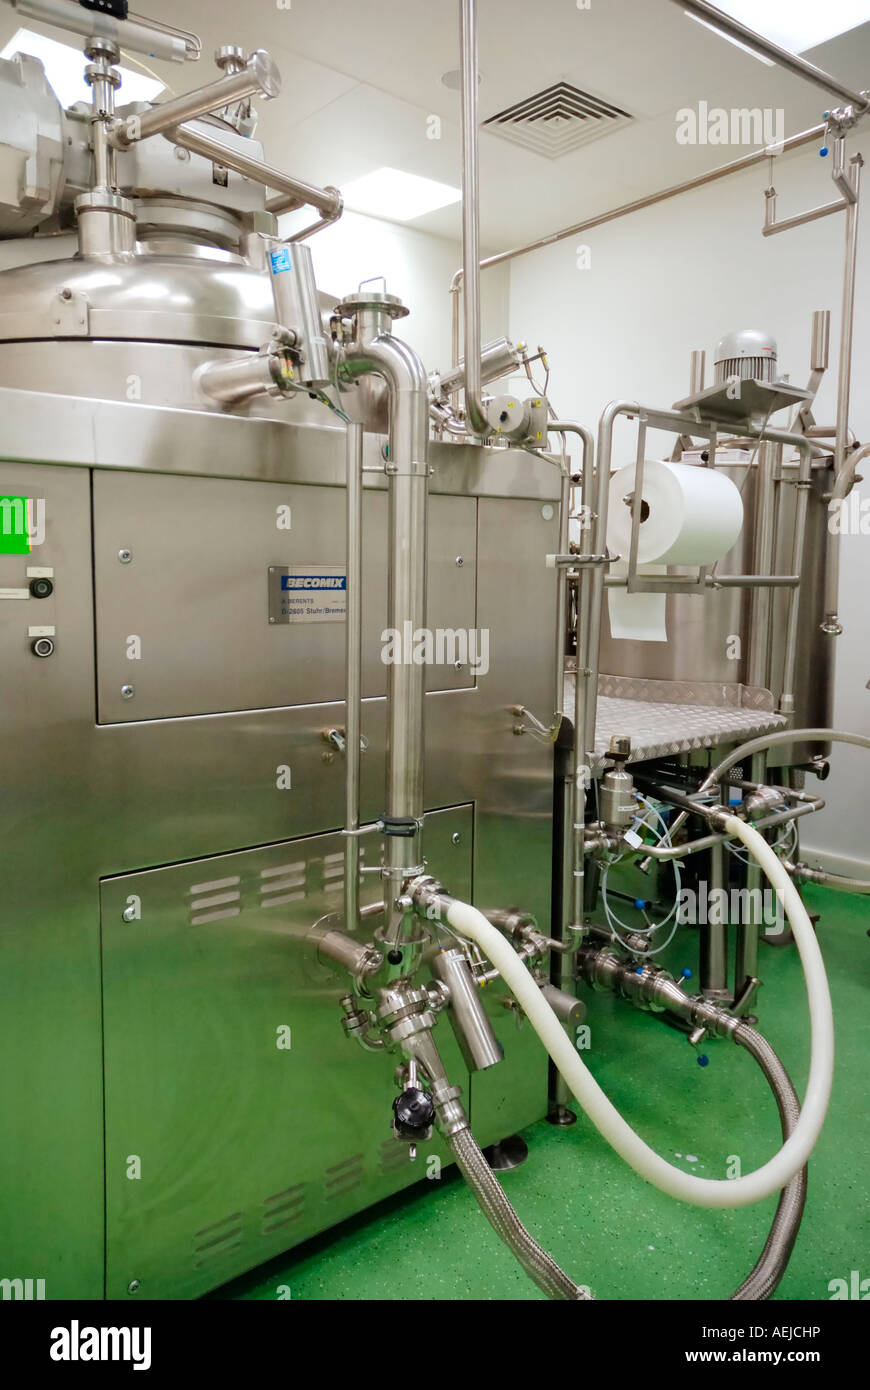 Blender Becomix RW 1200 for the manufacturing of semisolid and liquid pharmaceutics and cosmetical products Stock Photo